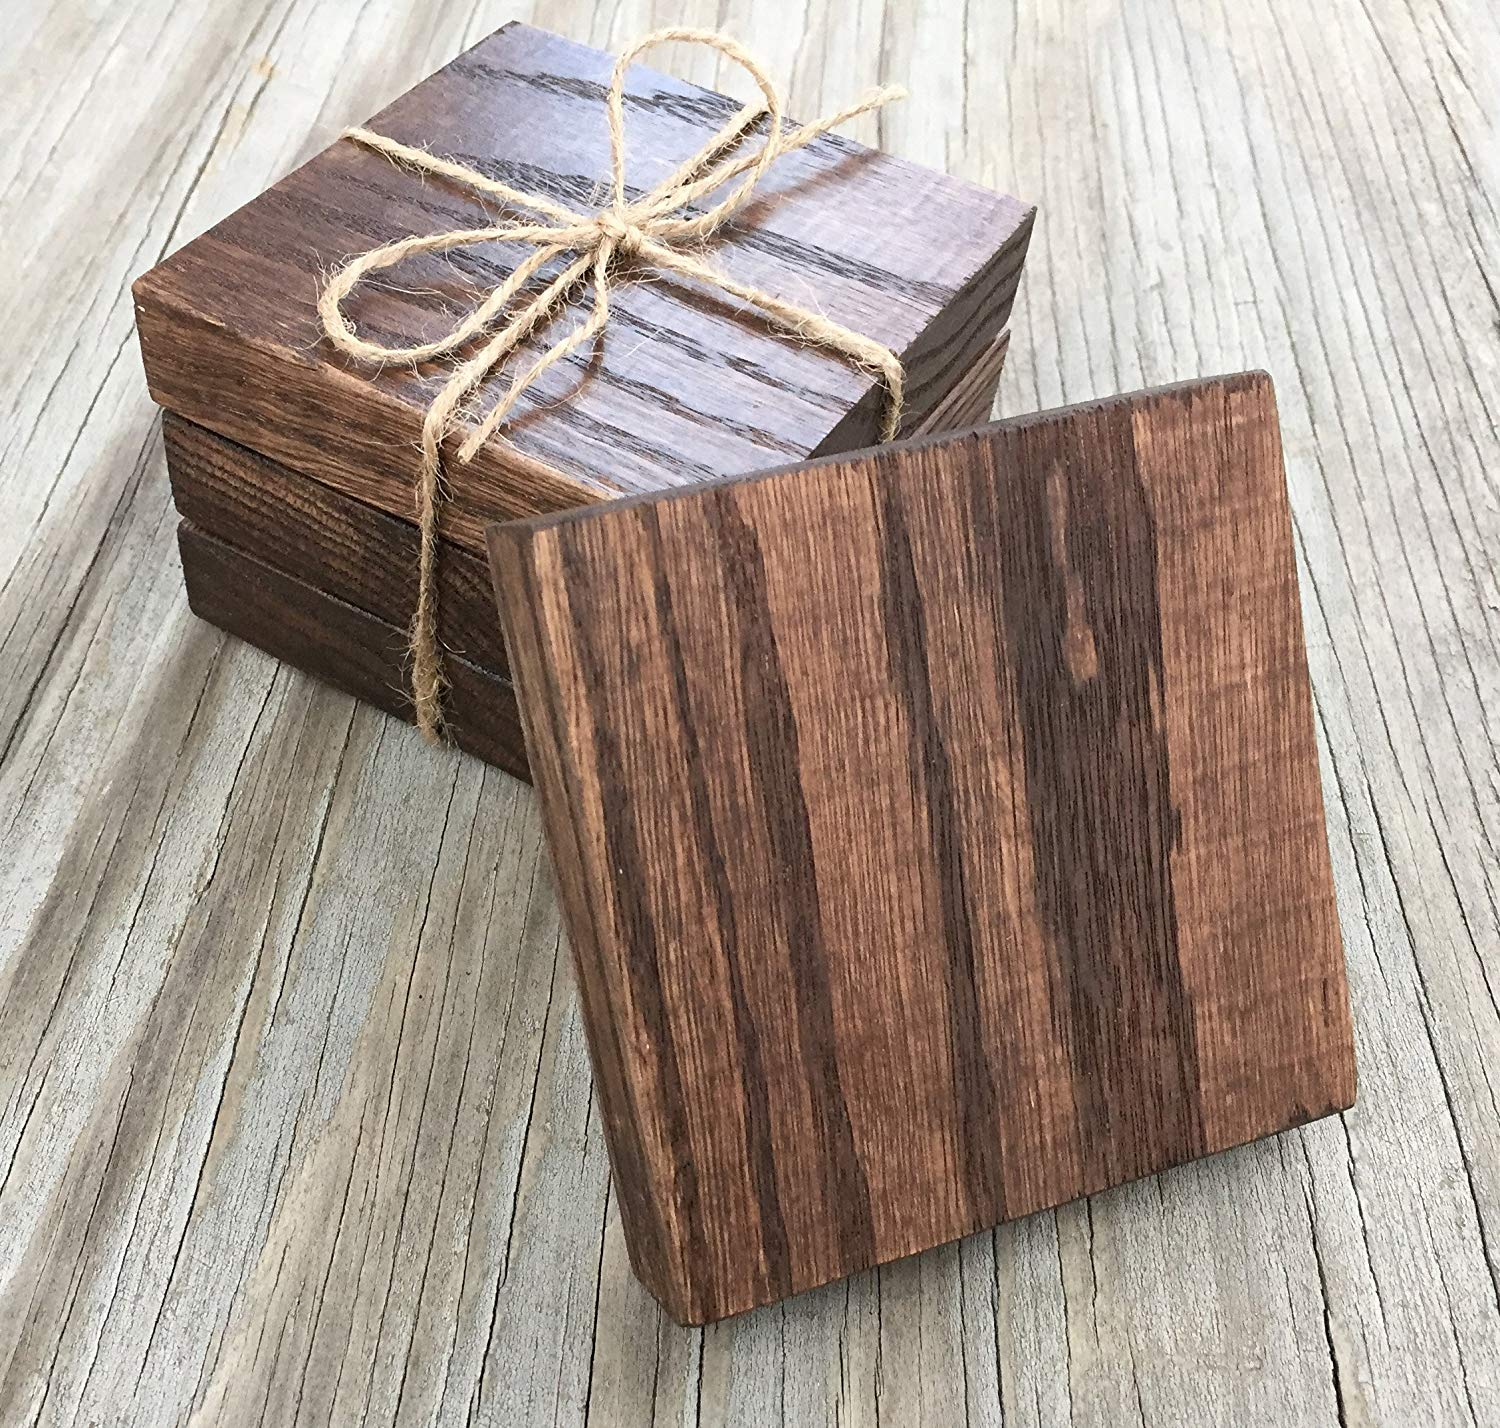 Rustic Handmade Kona Block Oak Wood Wooden Set Of 4 Wooden Drink Coaster Coasters Custom Stain Color Choices